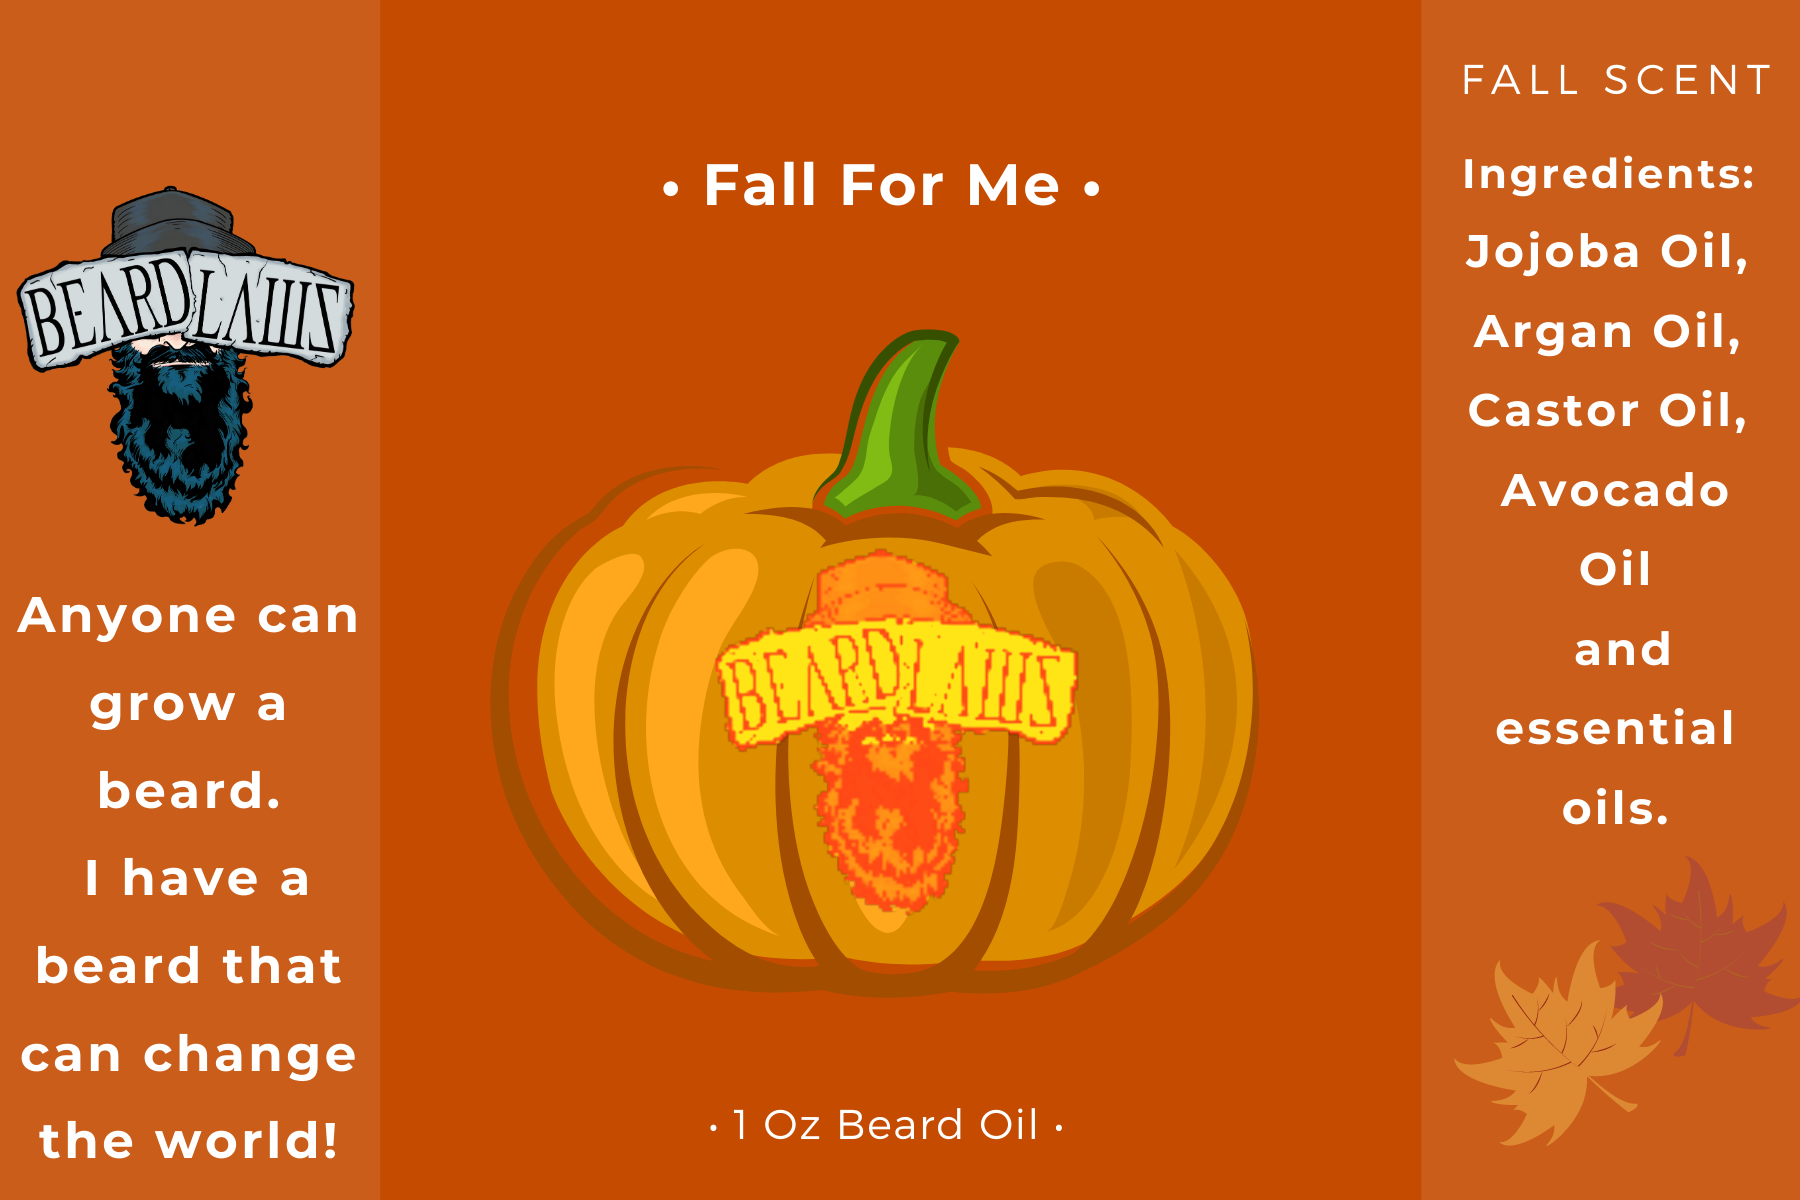 Beard Laws Beard Oil - Fall For Me